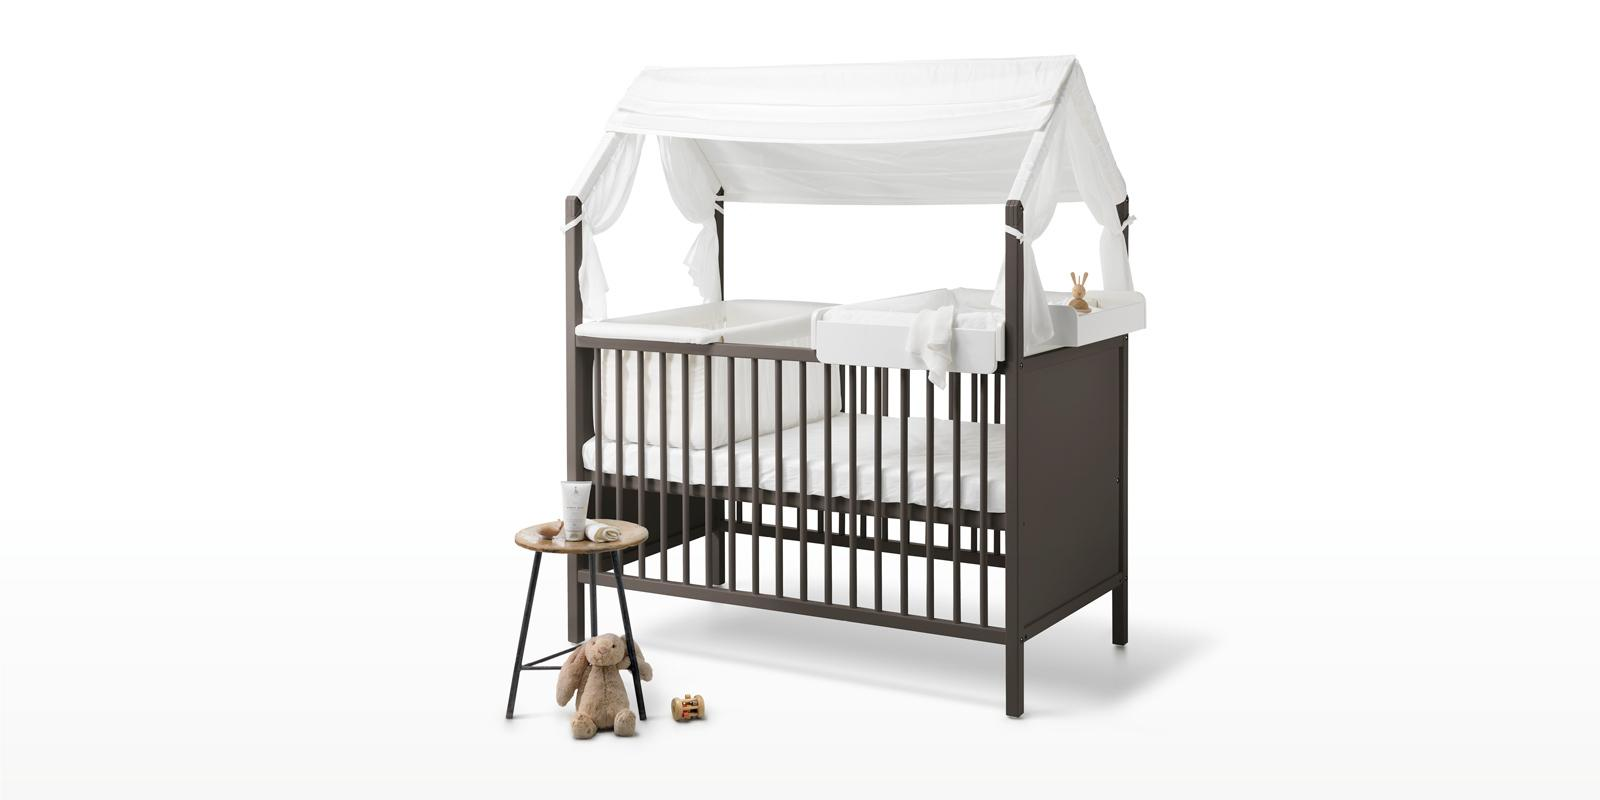 black and white photos for bathroom stokke 174 home bed nursery stokke 25134